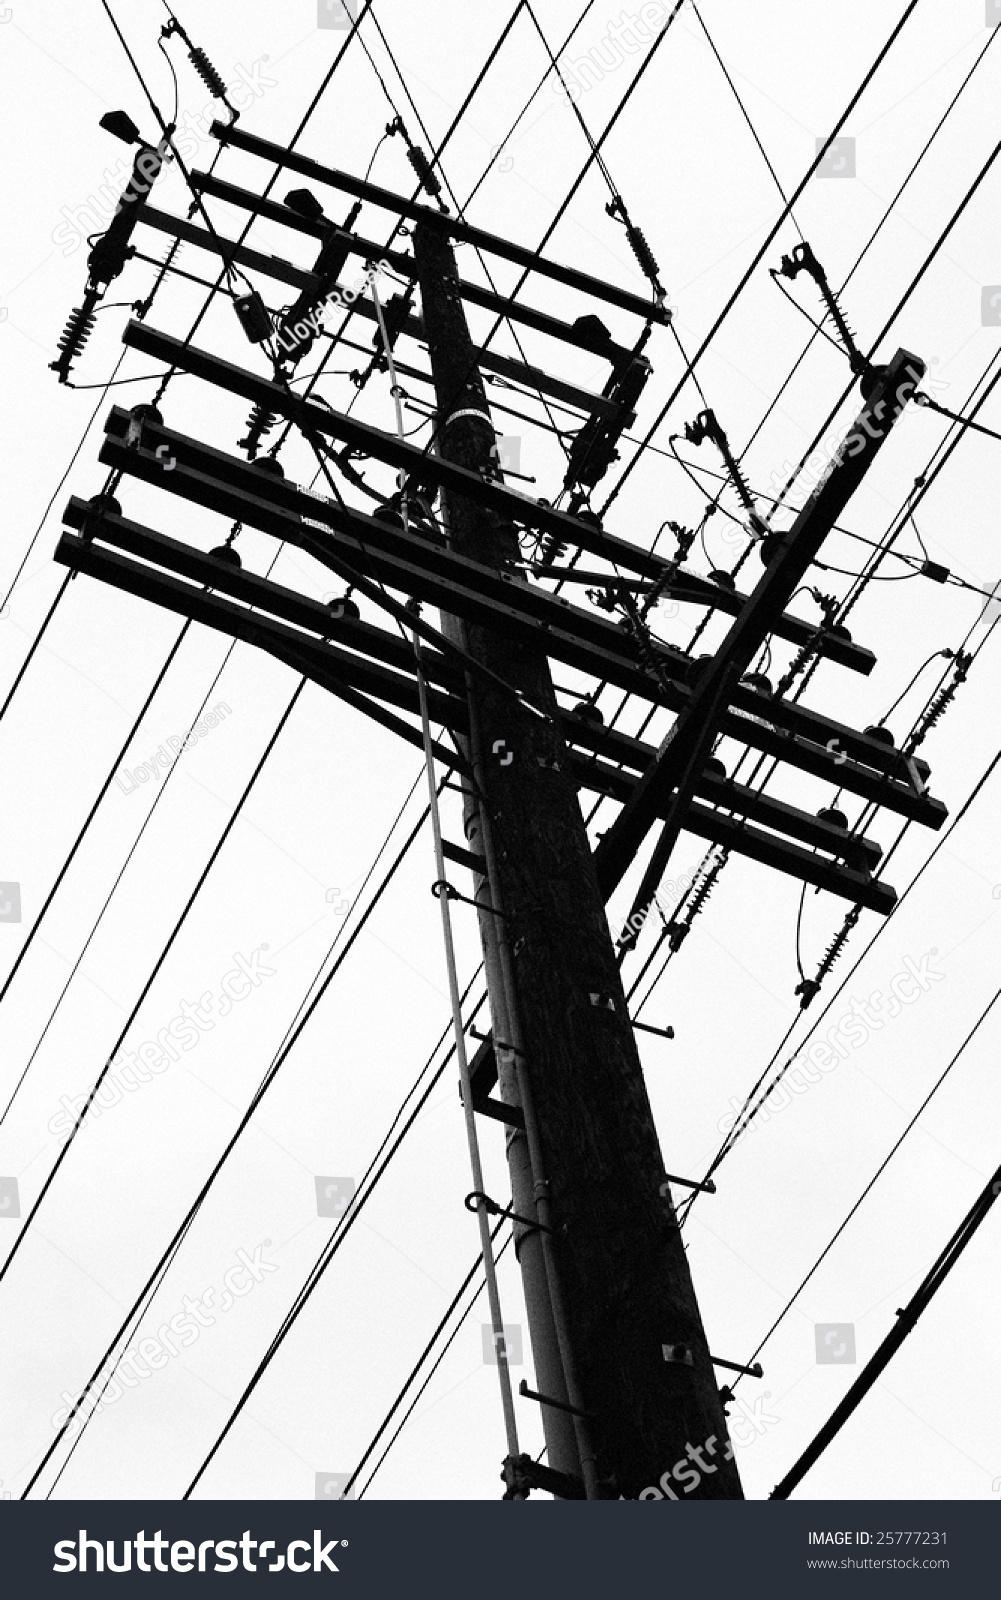 Telephone Pole Wires Stock Photo (Edit Now)- Shutterstock